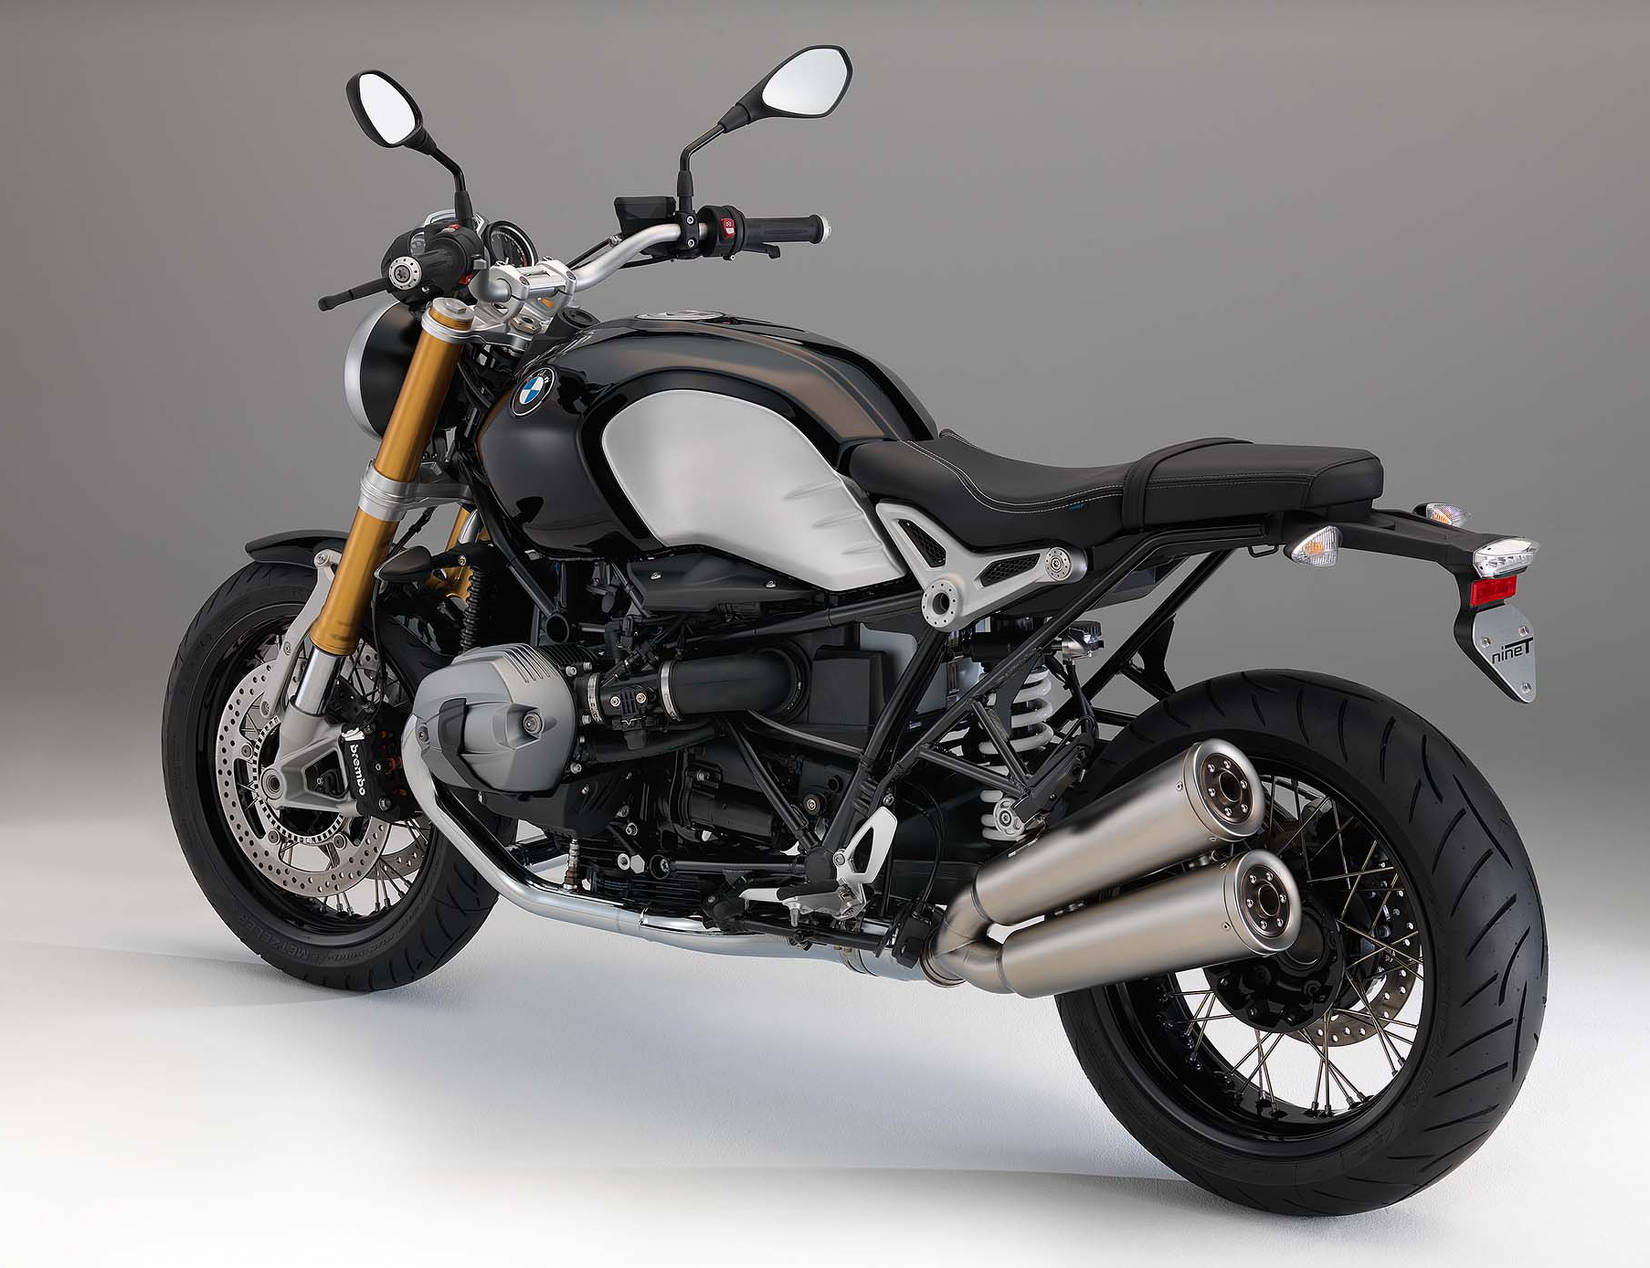 BMW Unveils The R NineT Retro Standard You Have Been Waiting